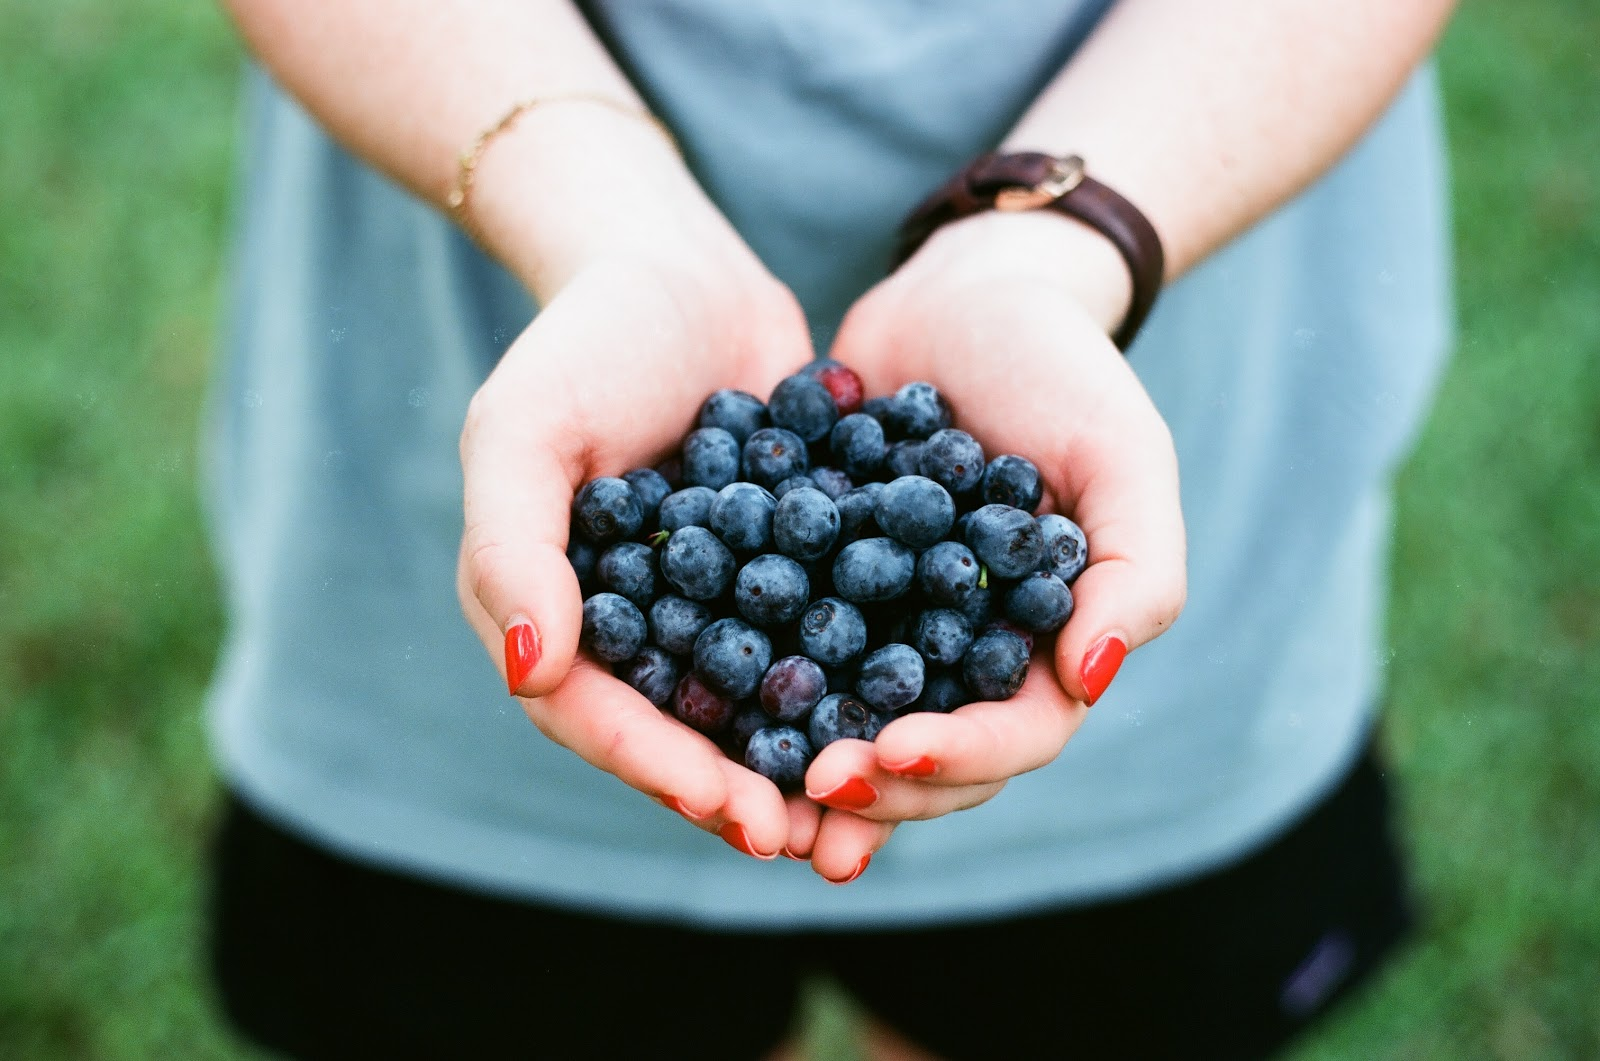 Woman holding blueberries with both of her hands cupped together.